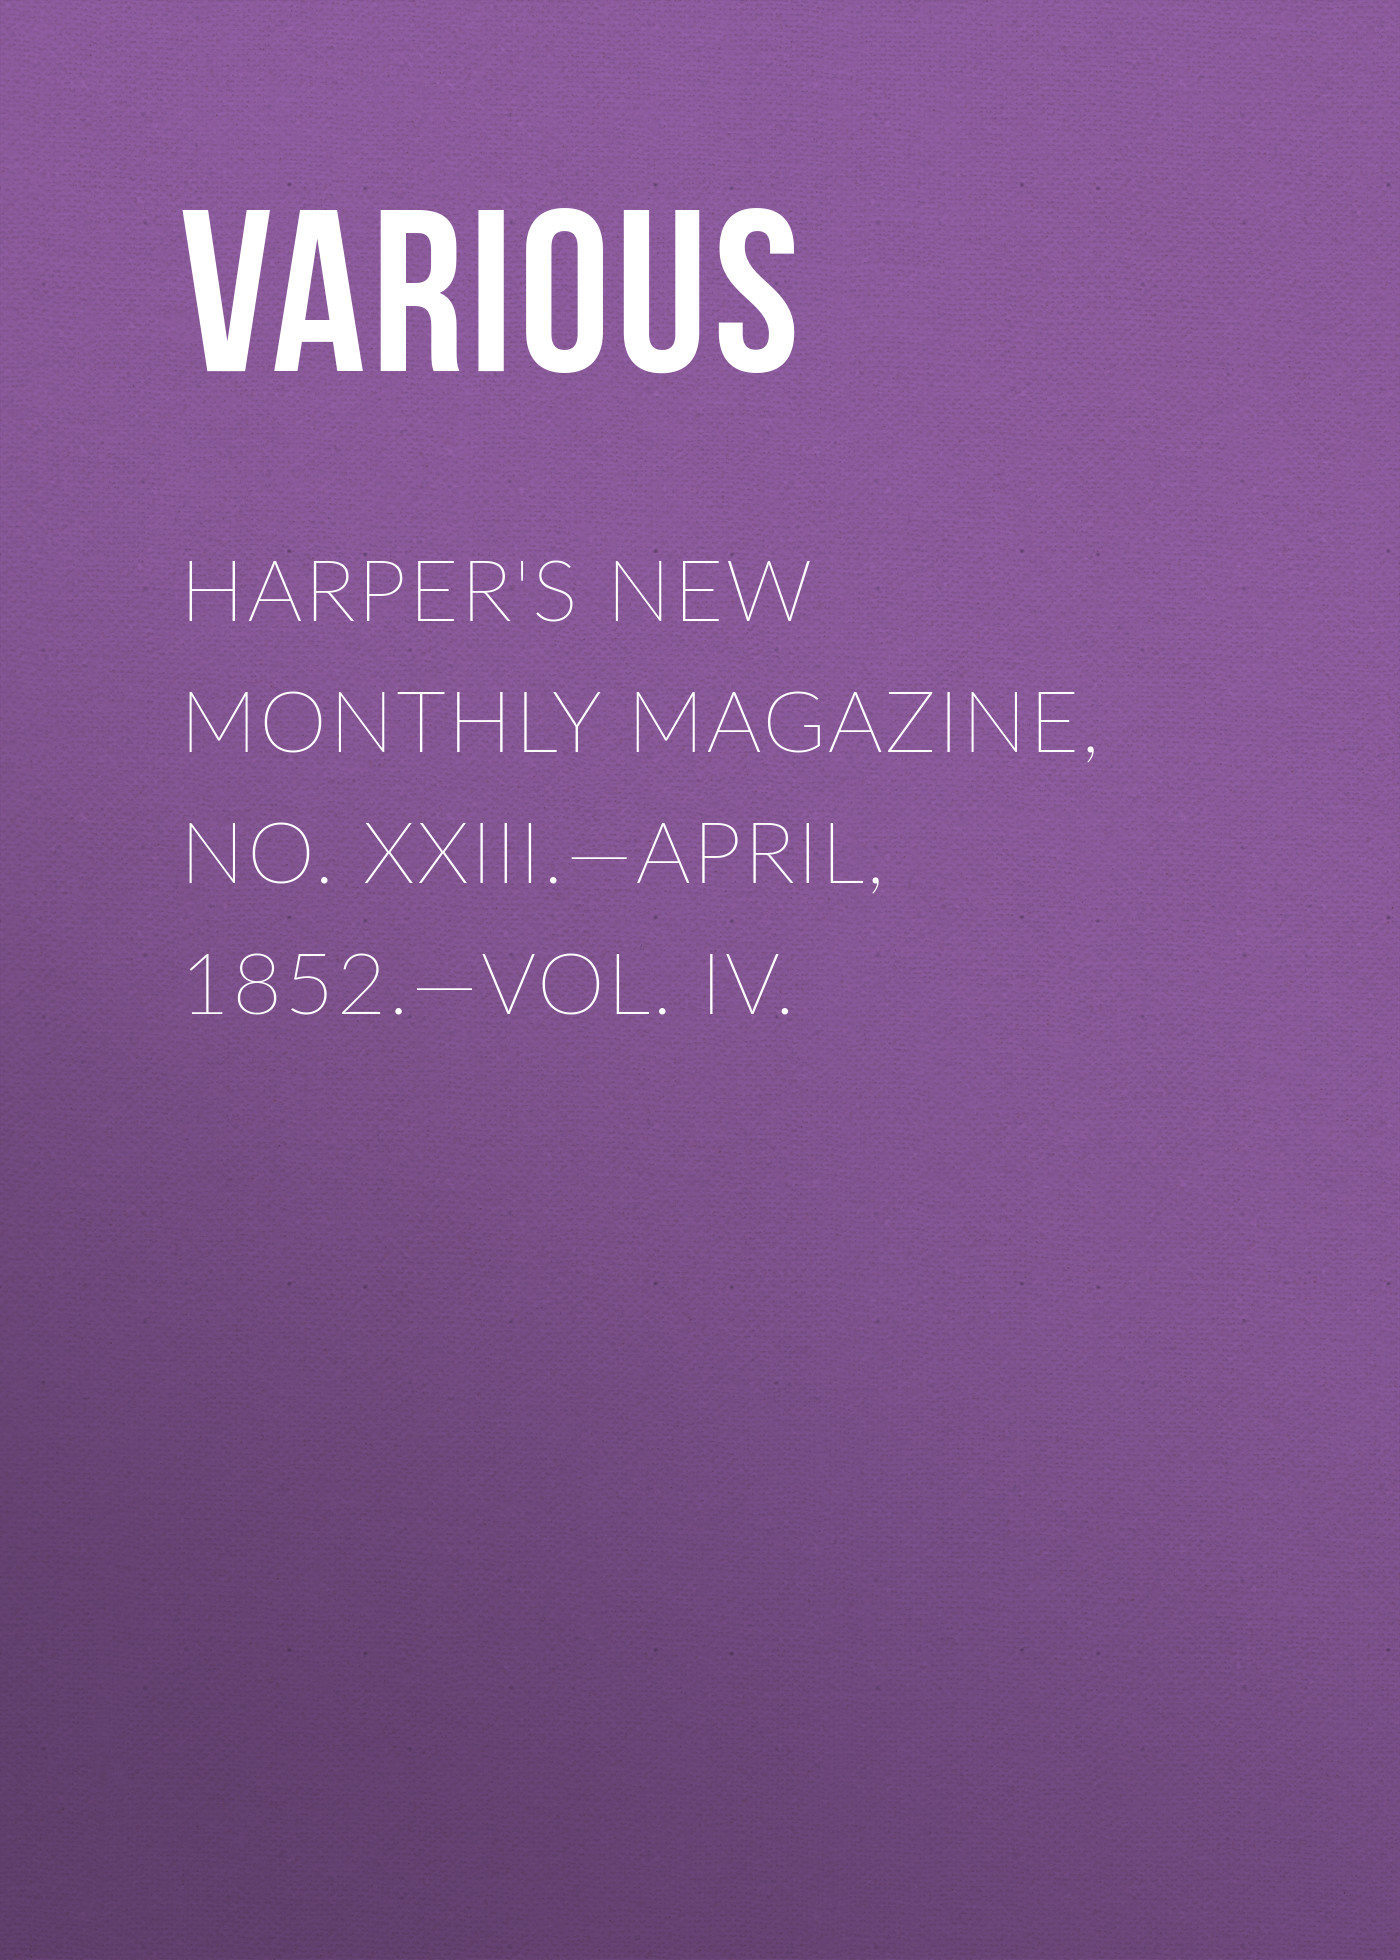 Фото - Various Harper's New Monthly Magazine, No. XXIII.—April, 1852.—Vol. IV. various harper s new monthly magazine no xxiii april 1852 vol iv